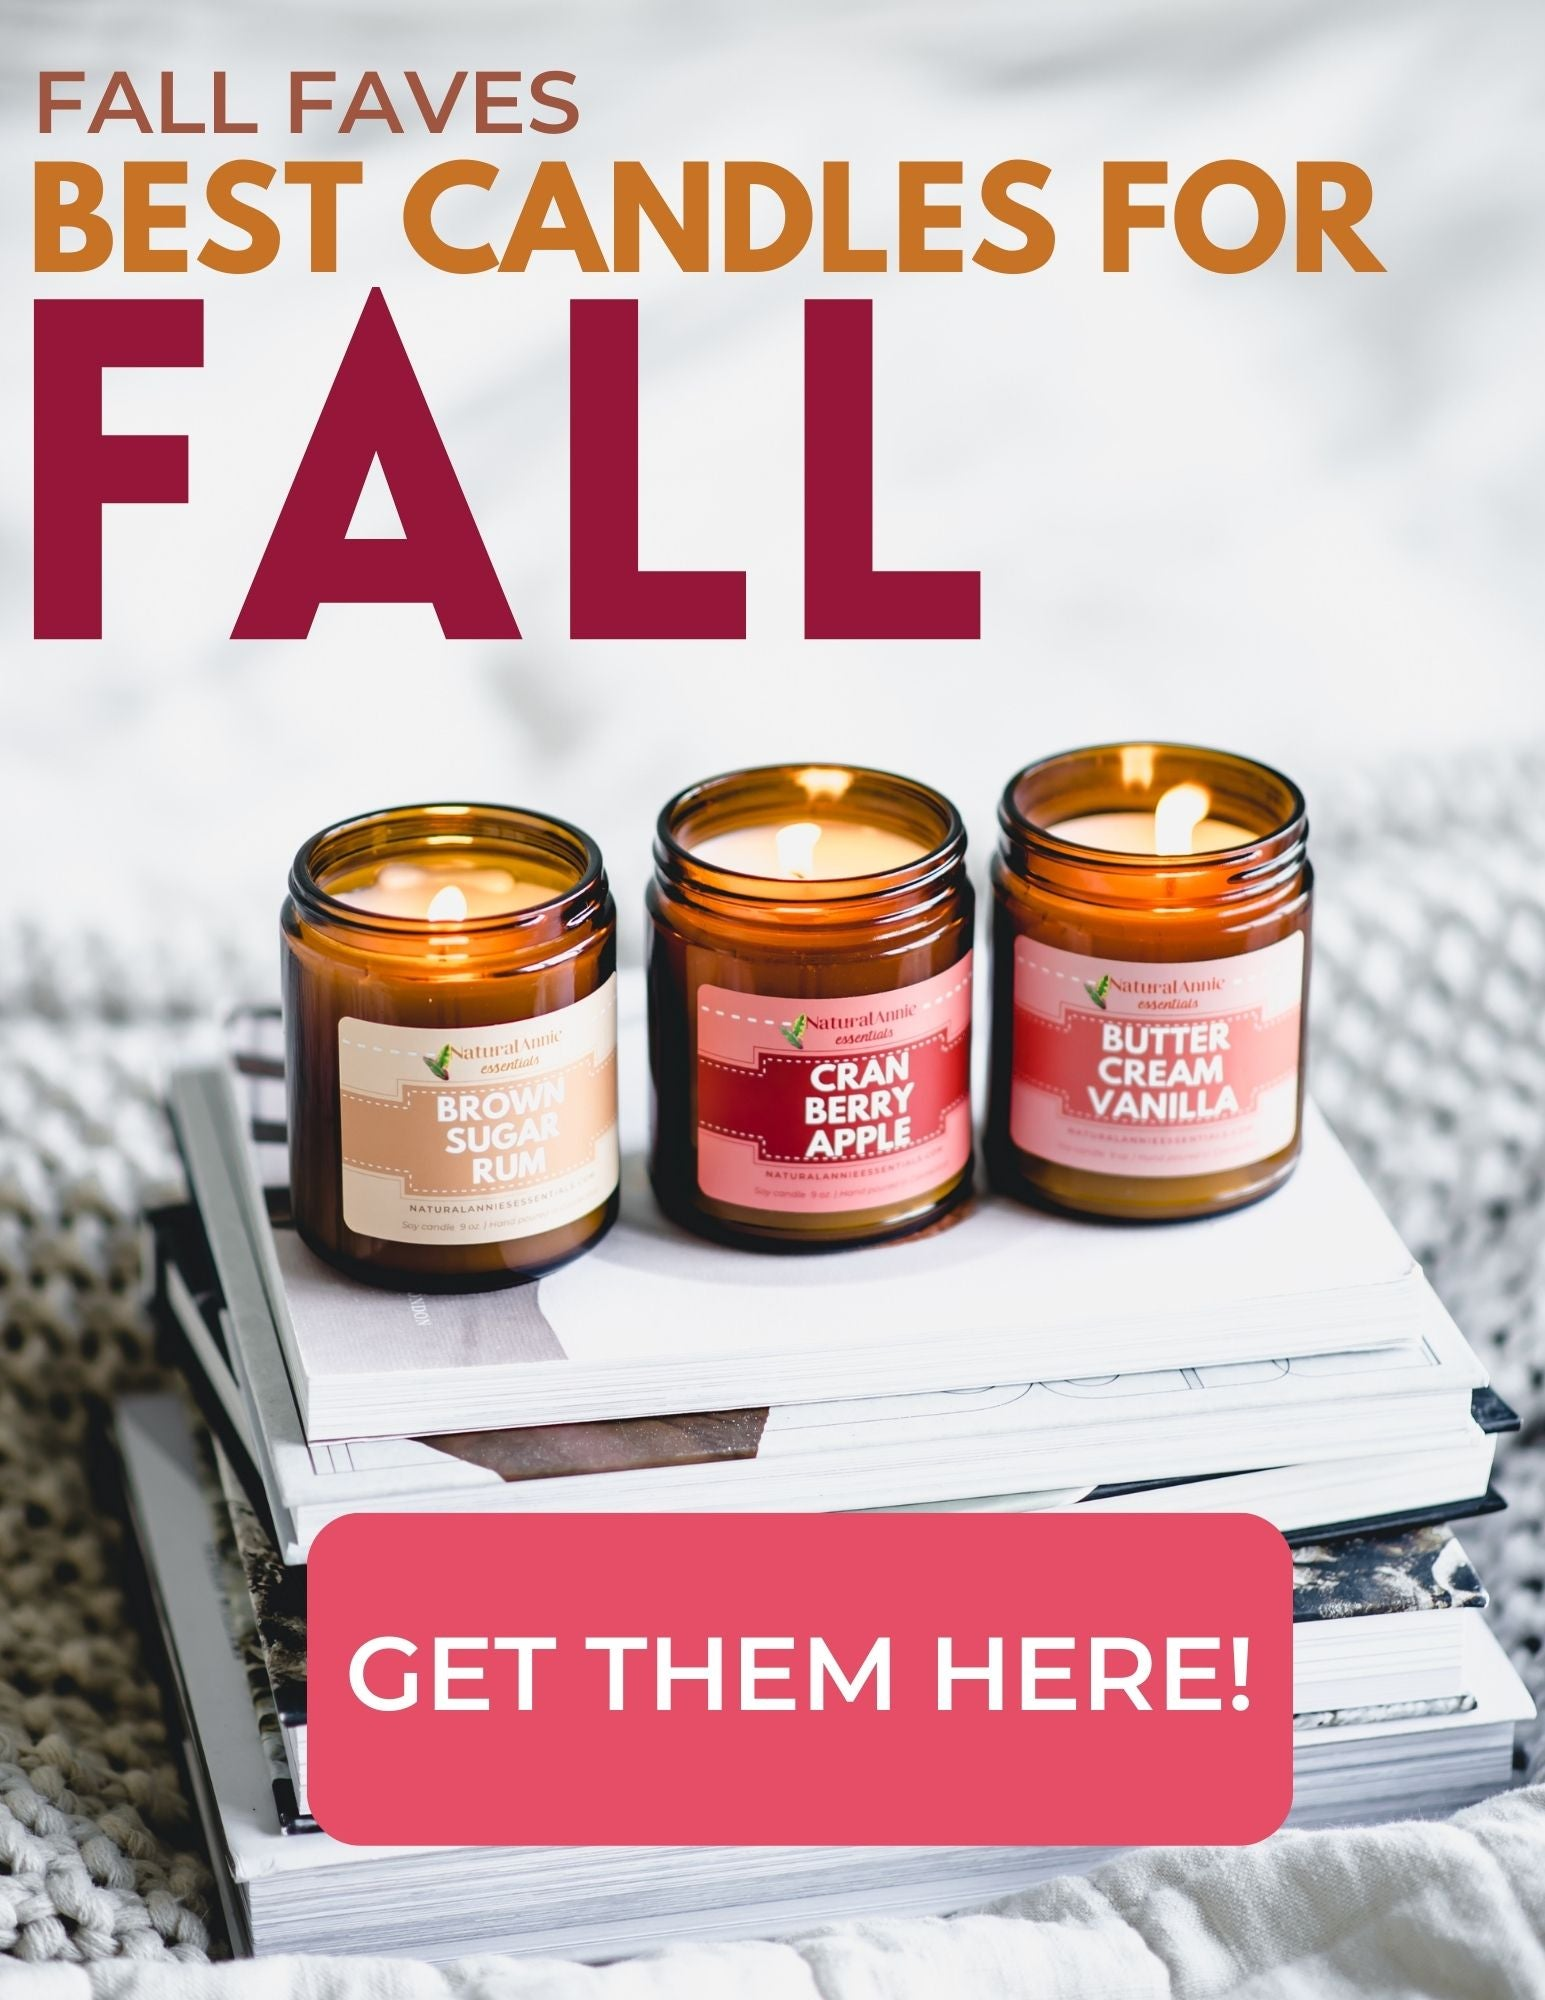 BEST ALL NATURAL CANDLES FOR FALL